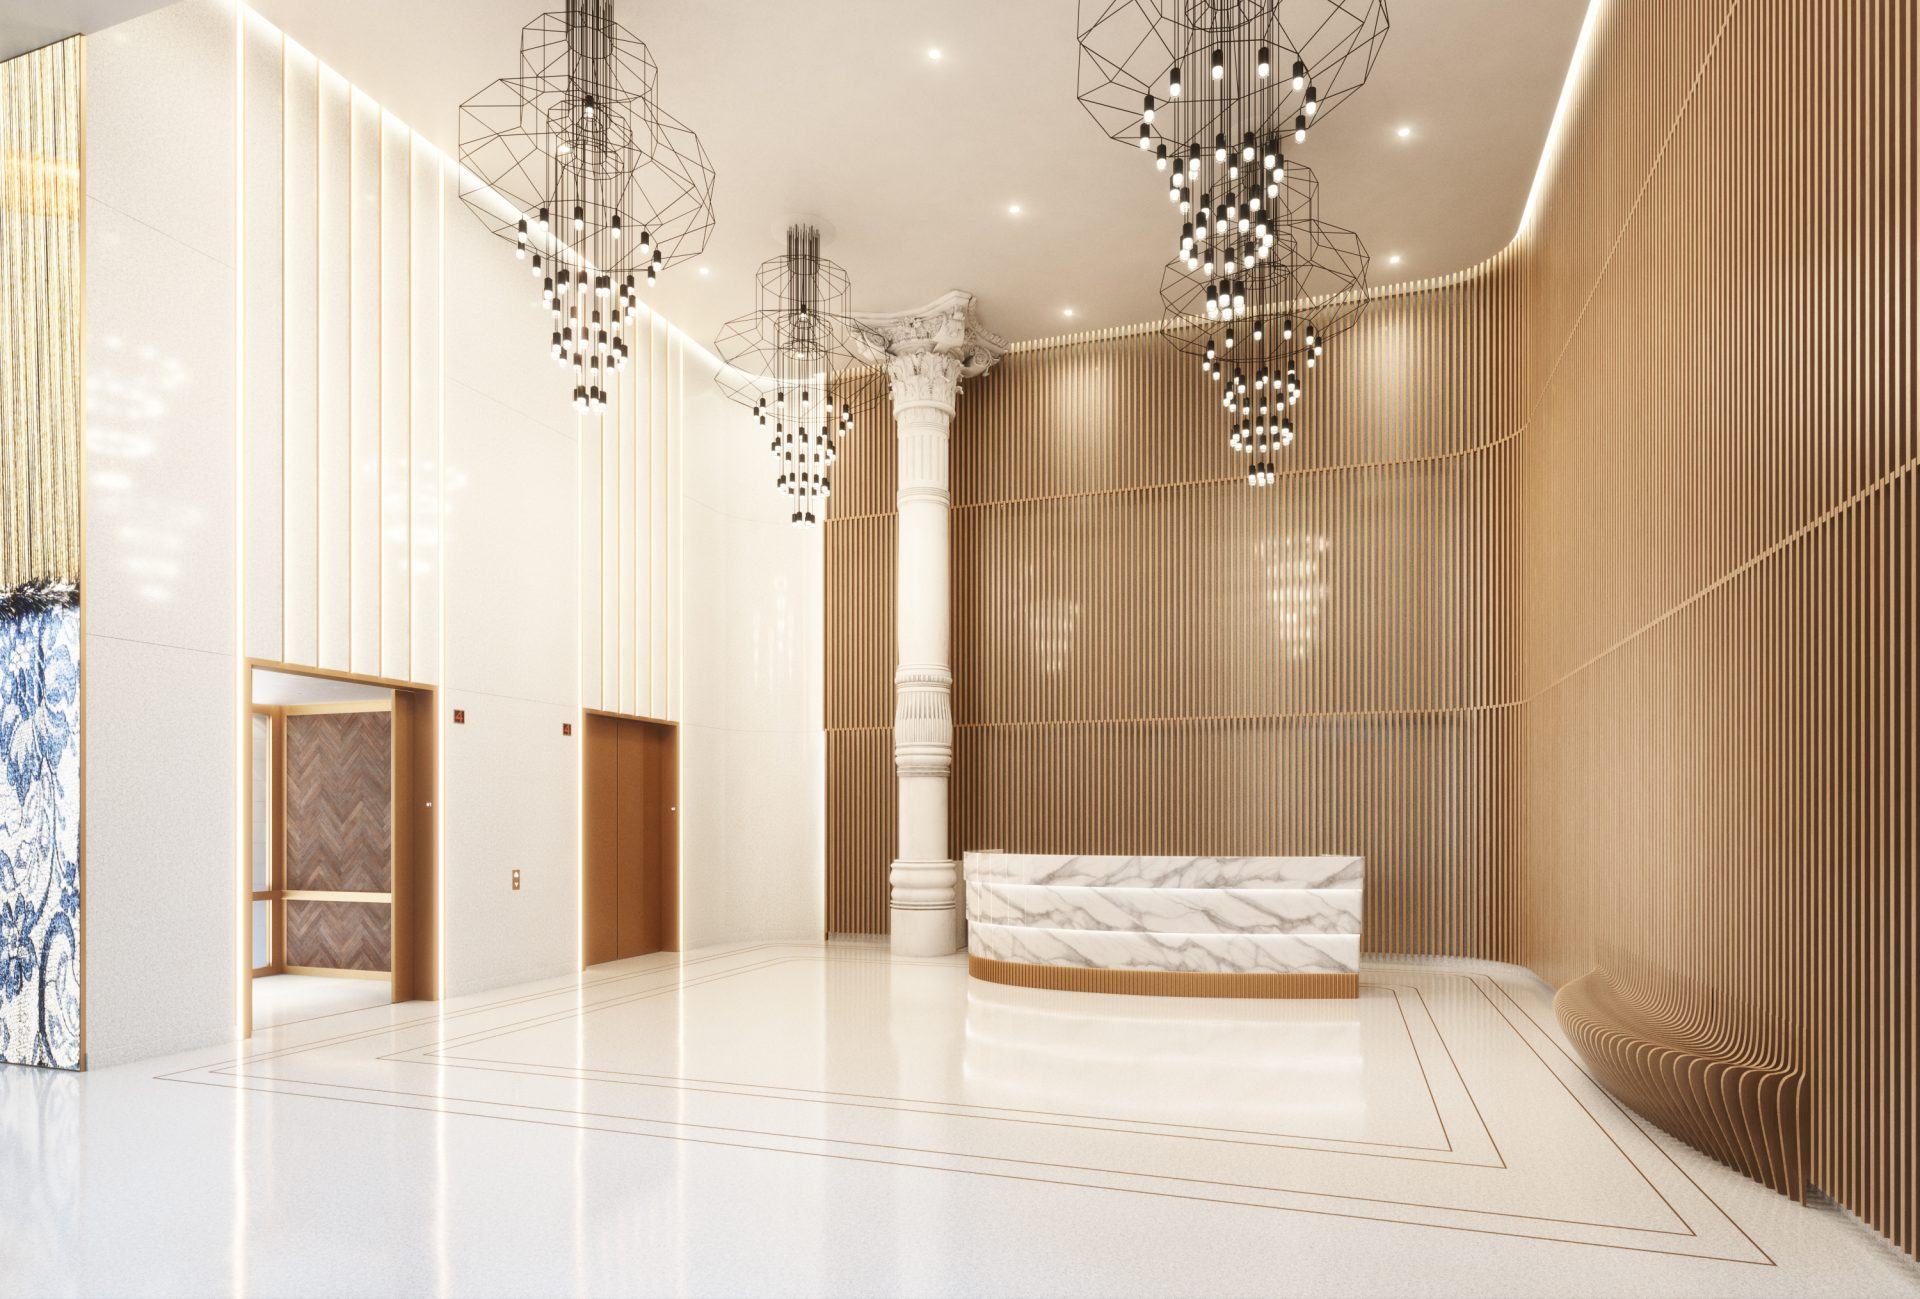 Rendering of the new lobby from the building renovation of 888 Broadway